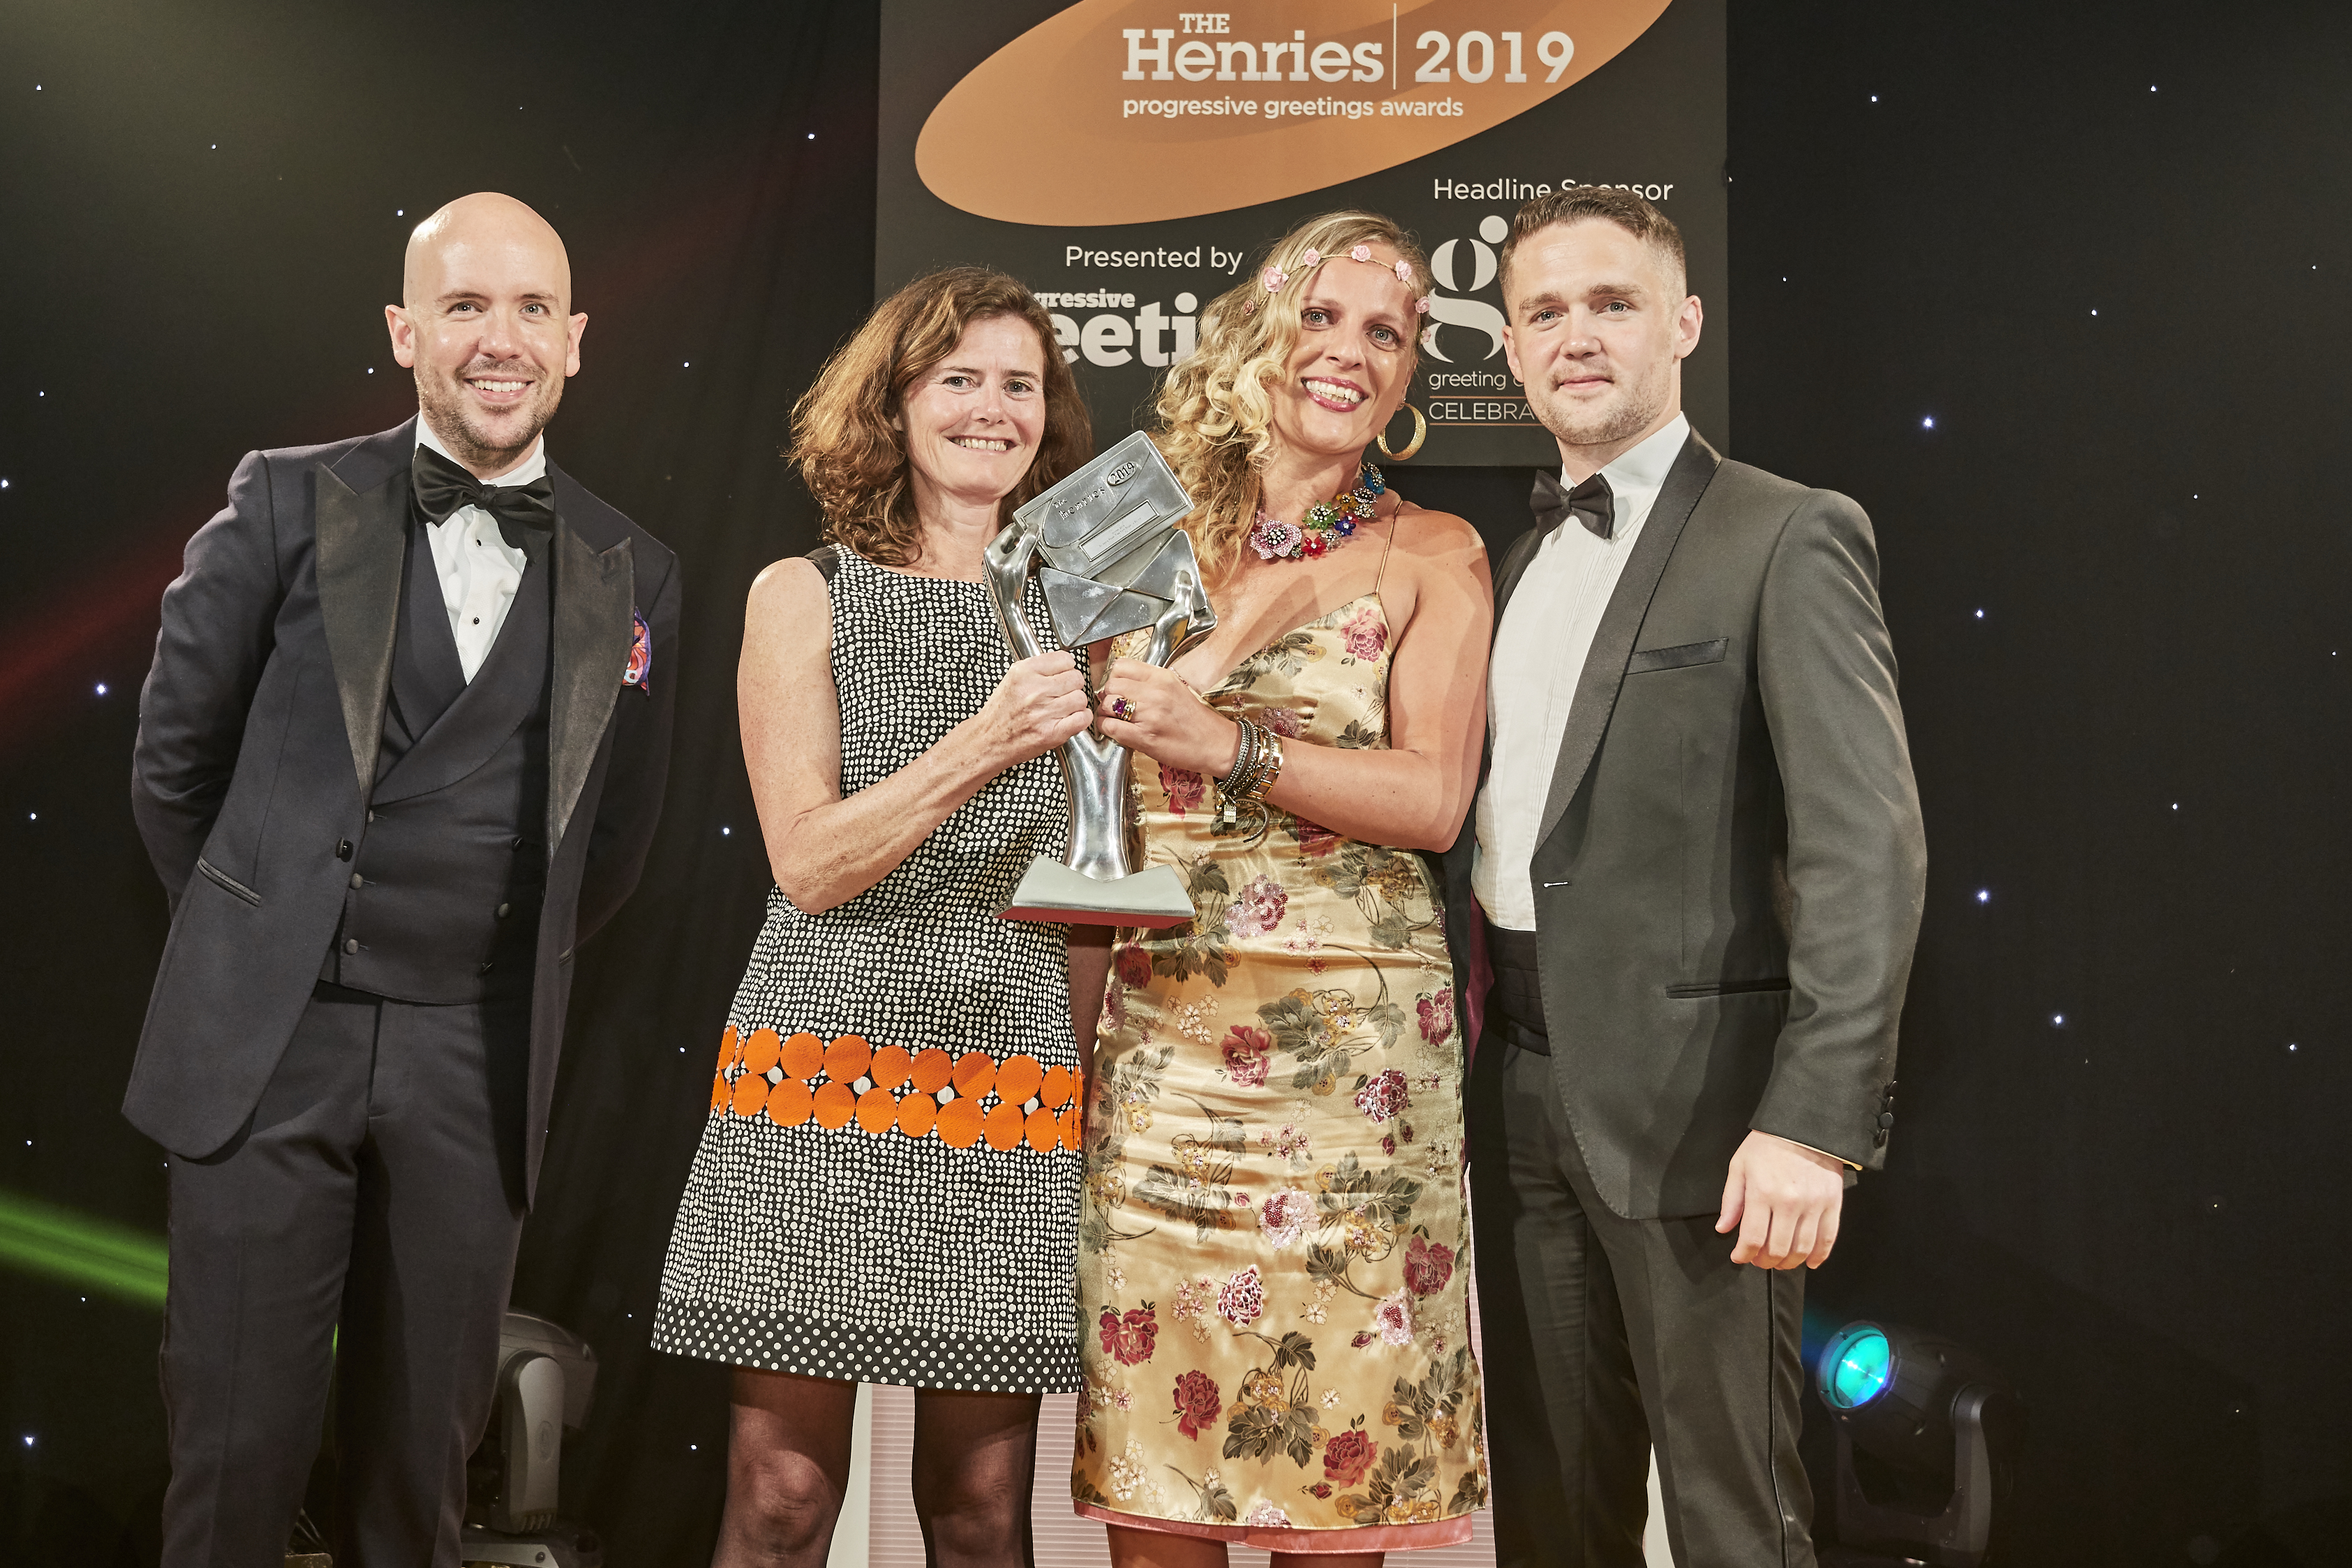 Above: Roger la Borde's production director Julie Hadingham (second left) and operations director Michaela Vrabelova, were delighted to be presented with the trophy by Marcus Fenner, sales director of Fenner Paper, which sponsored this award.